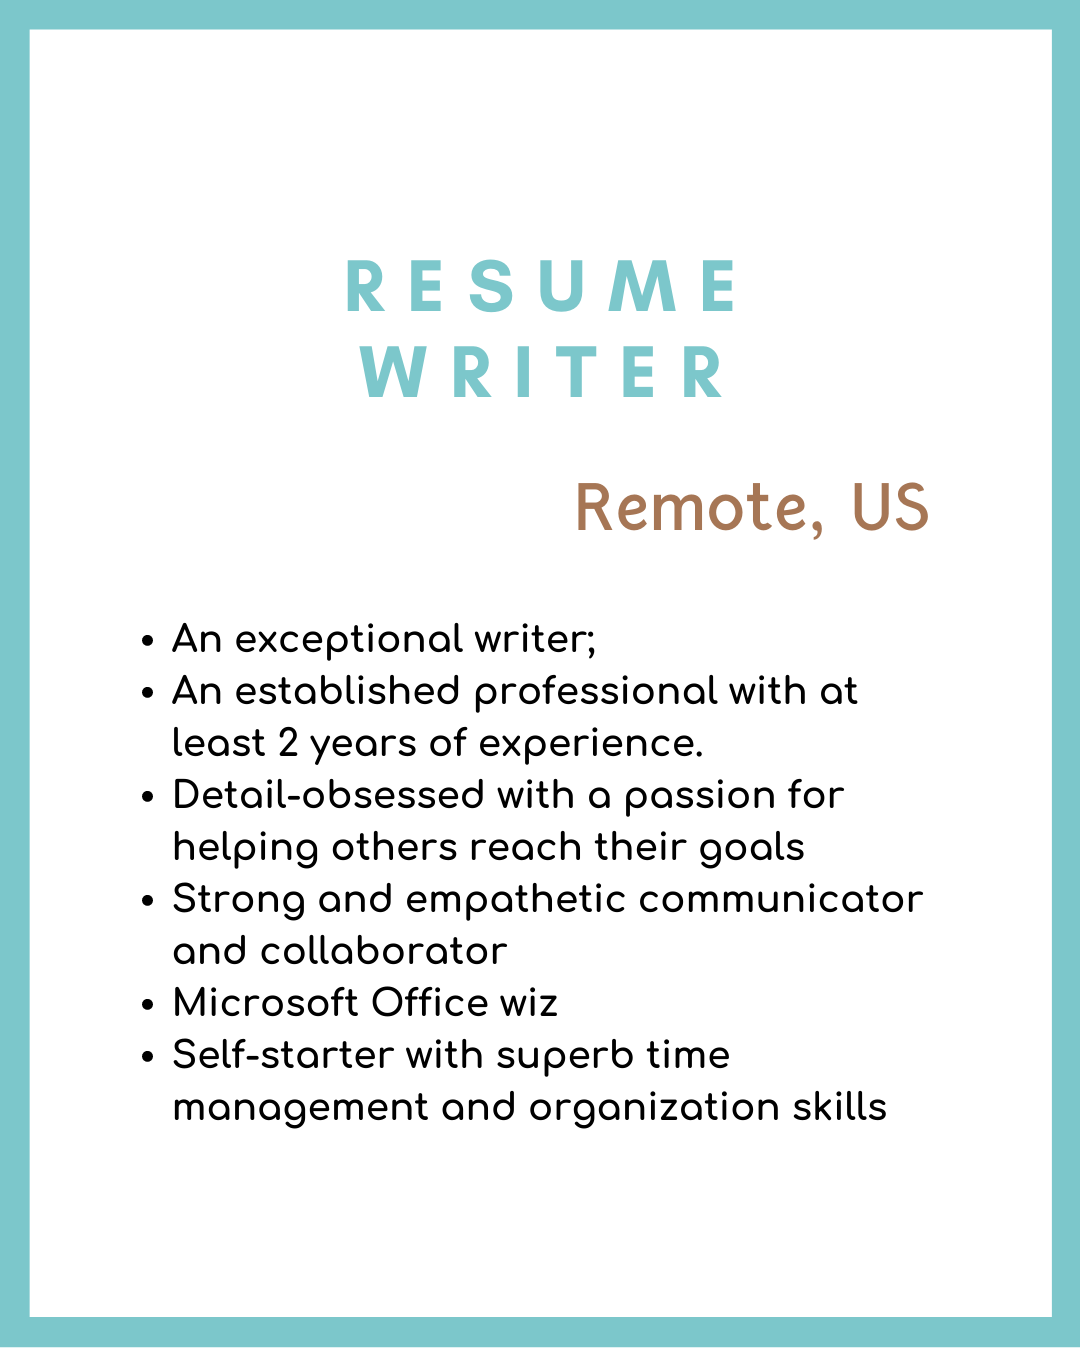 Resume Writer Remote Writing Jobs in 2020